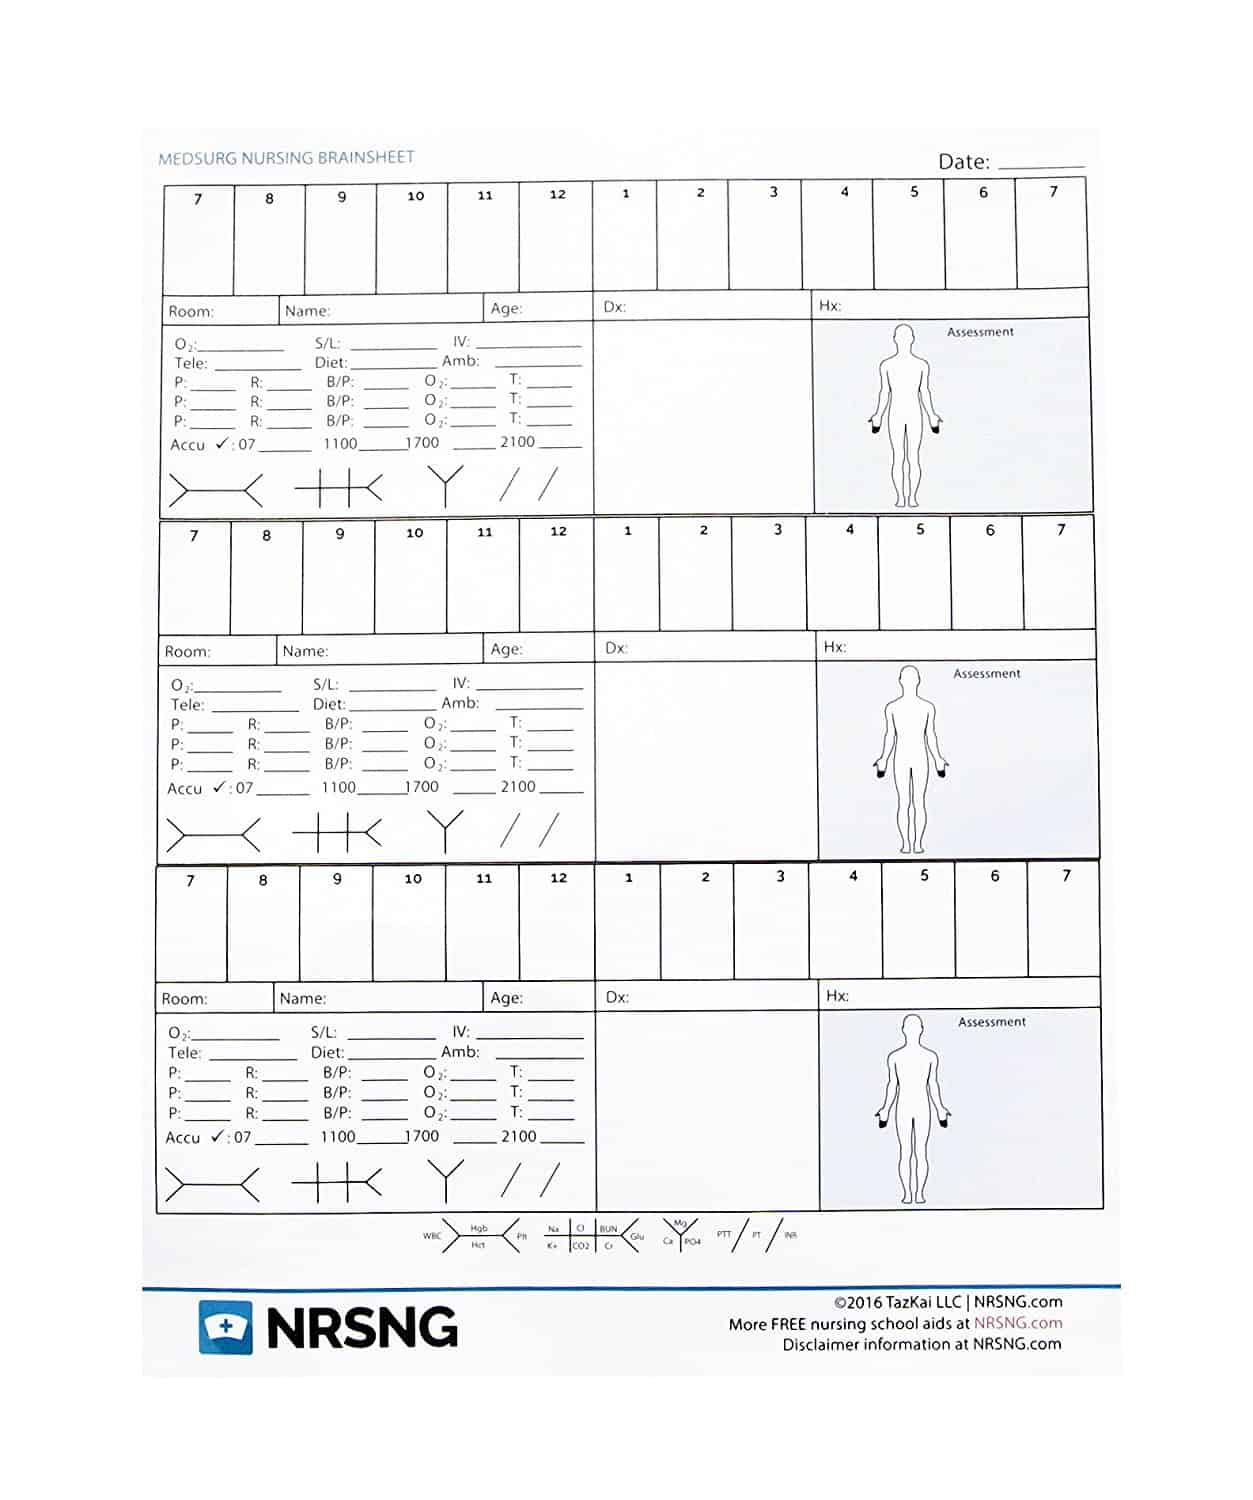 Nursing Brain Sheet